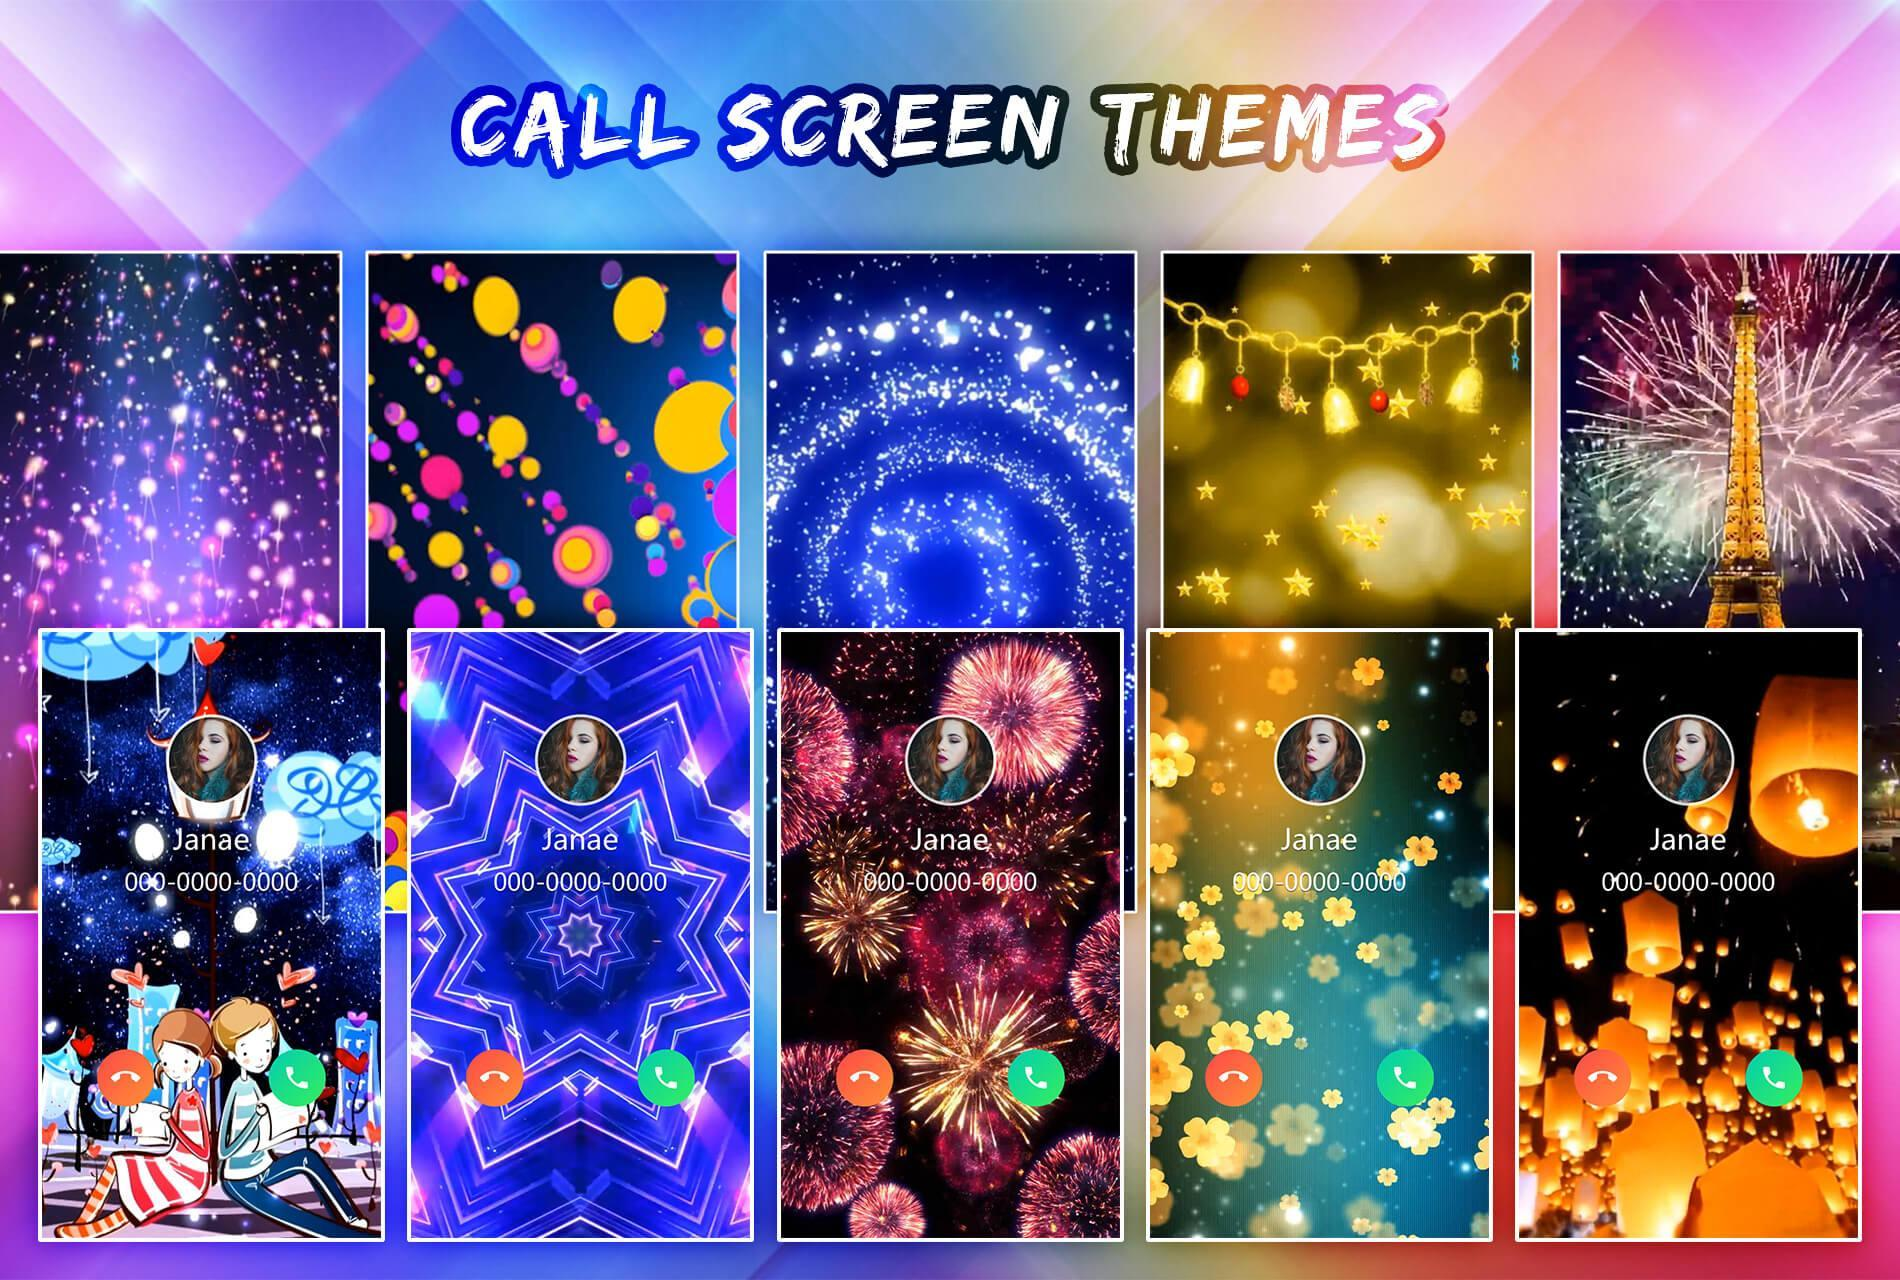 Color Call Flash- Call Screen, Color Phone Flash for Android - APK